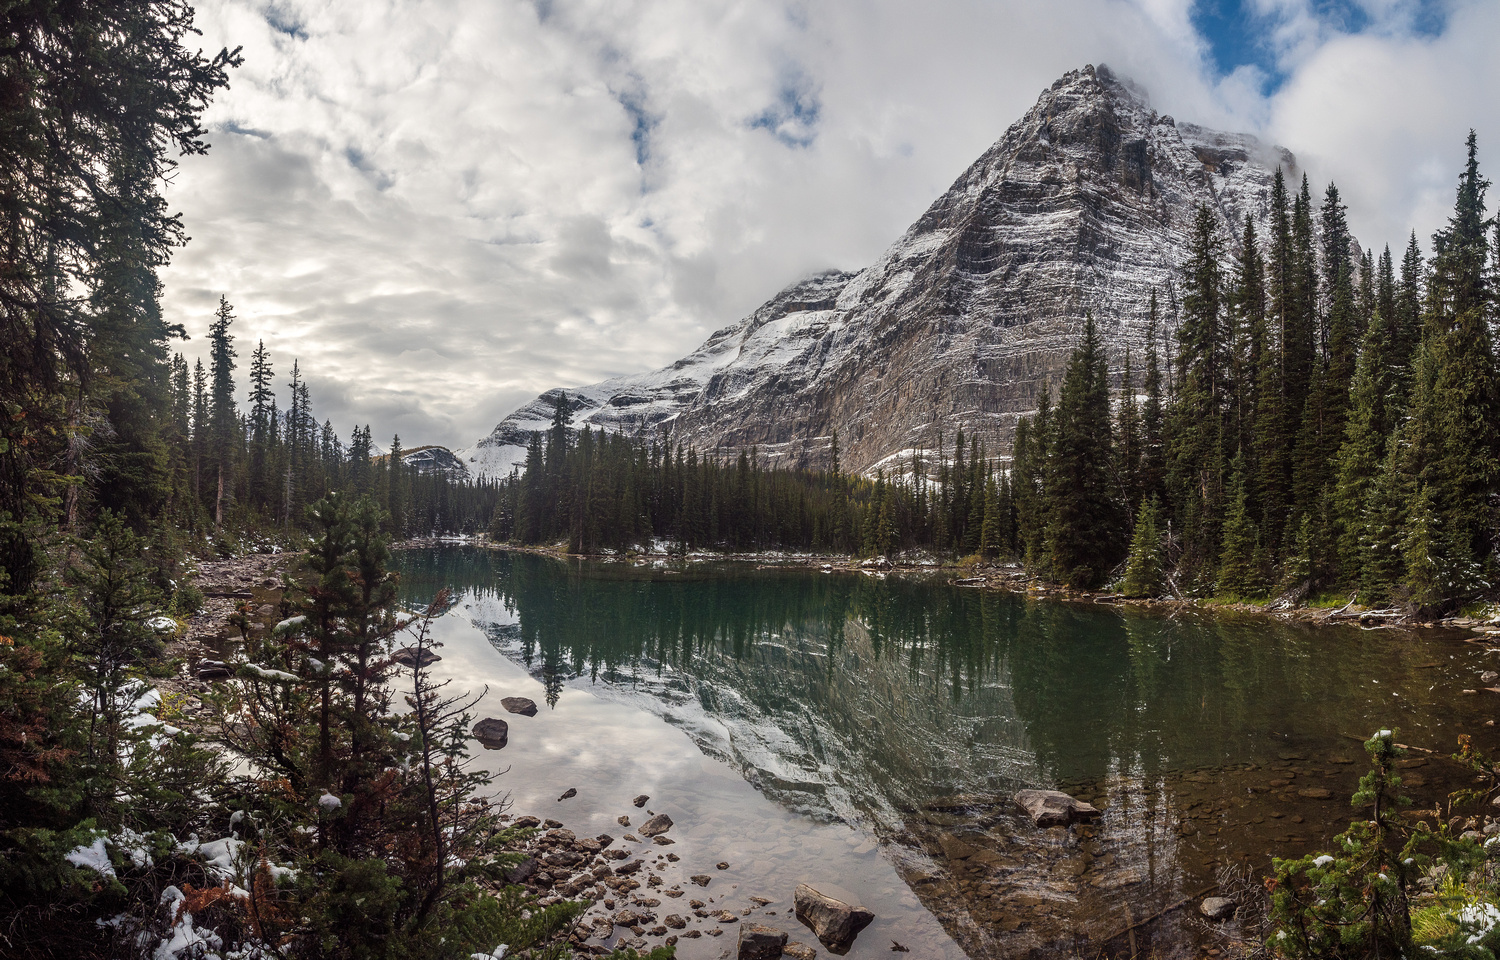 The lovely, still waters of Linda Lake with Odaray Mountain in the background.